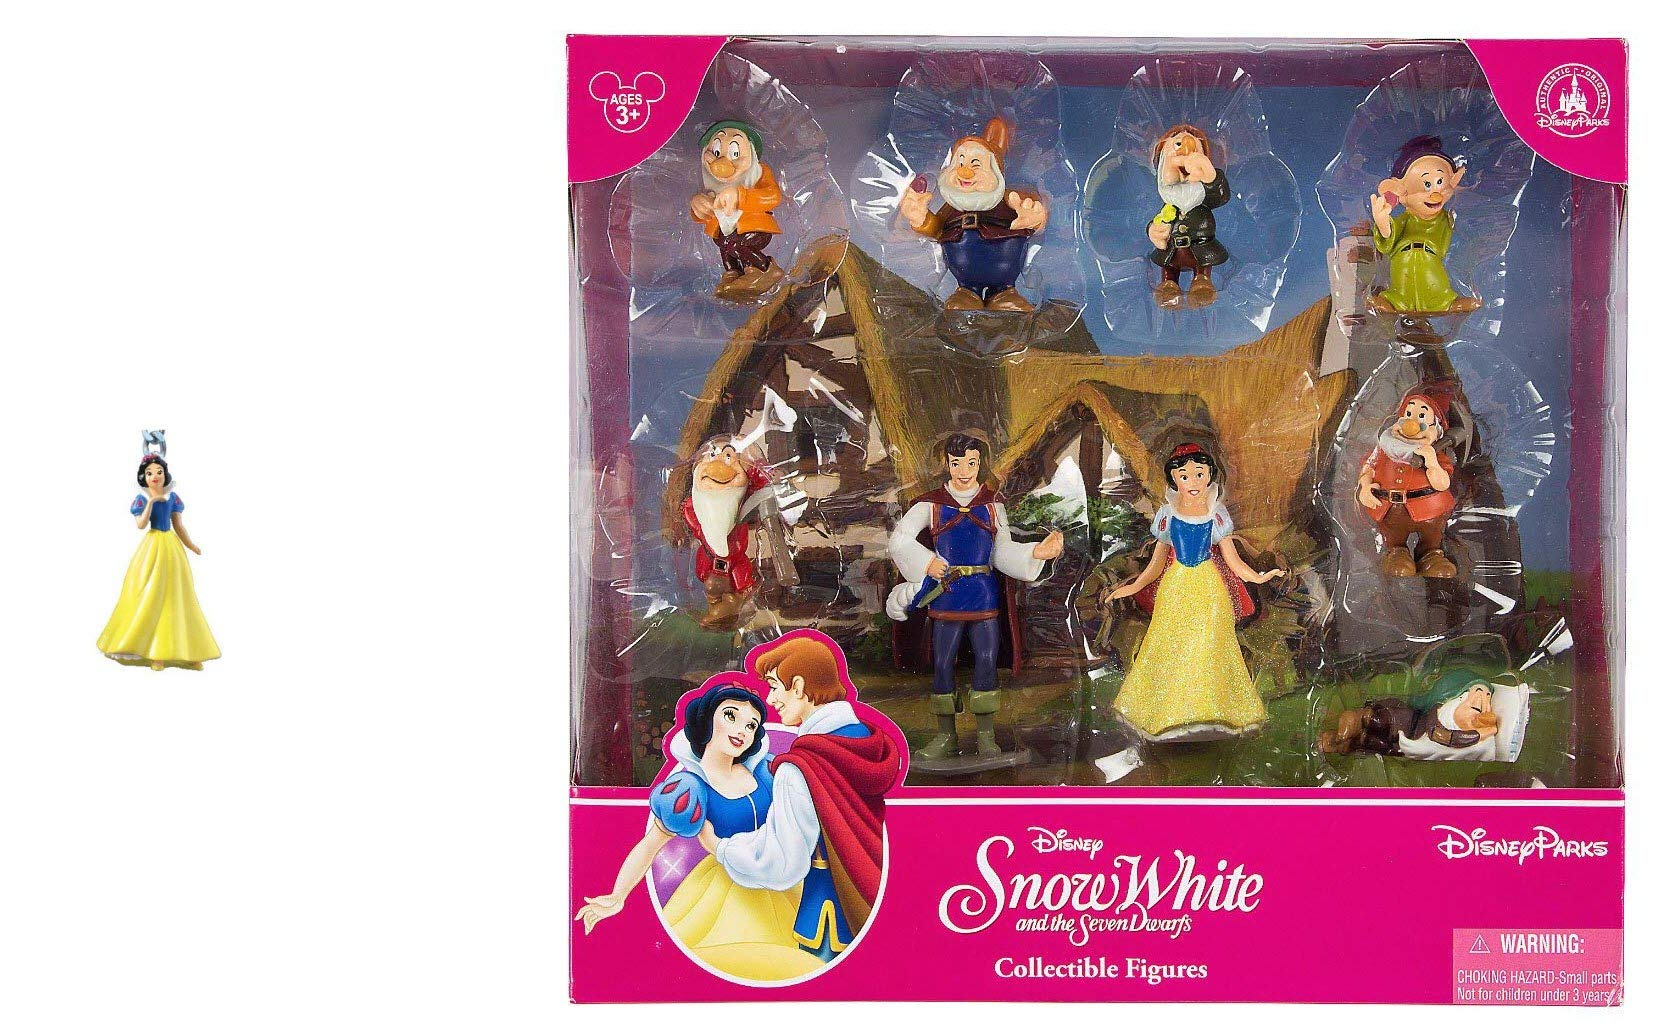 Snow White and The Seven Dwarfs Figurine Playset Play Set Cake Topper Featuring Snow White, The Prince, Bashful, Doc, Dopey, Grumpy, Happy, Sleepy, and Sneezy with Keychain (Snow White)